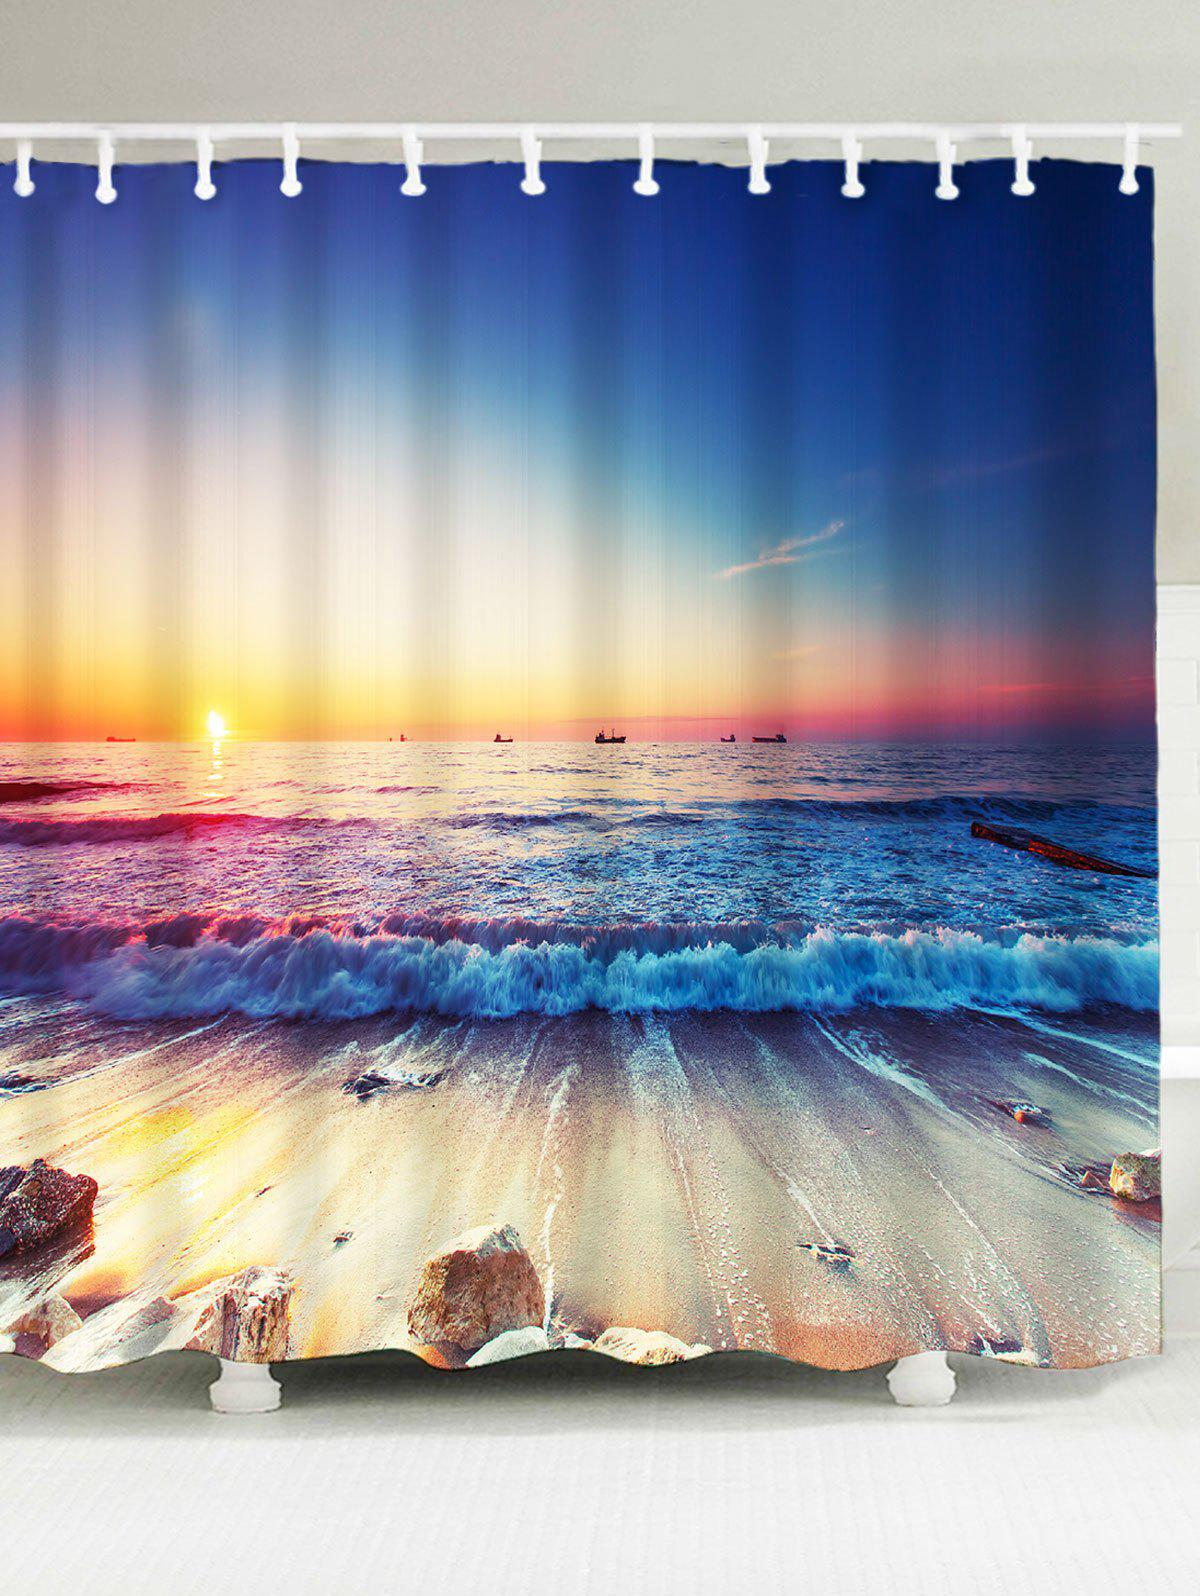 Waterproof Beach Sunlight Shower Curtain beach palm tree waterproof anti bacteria shower curtain